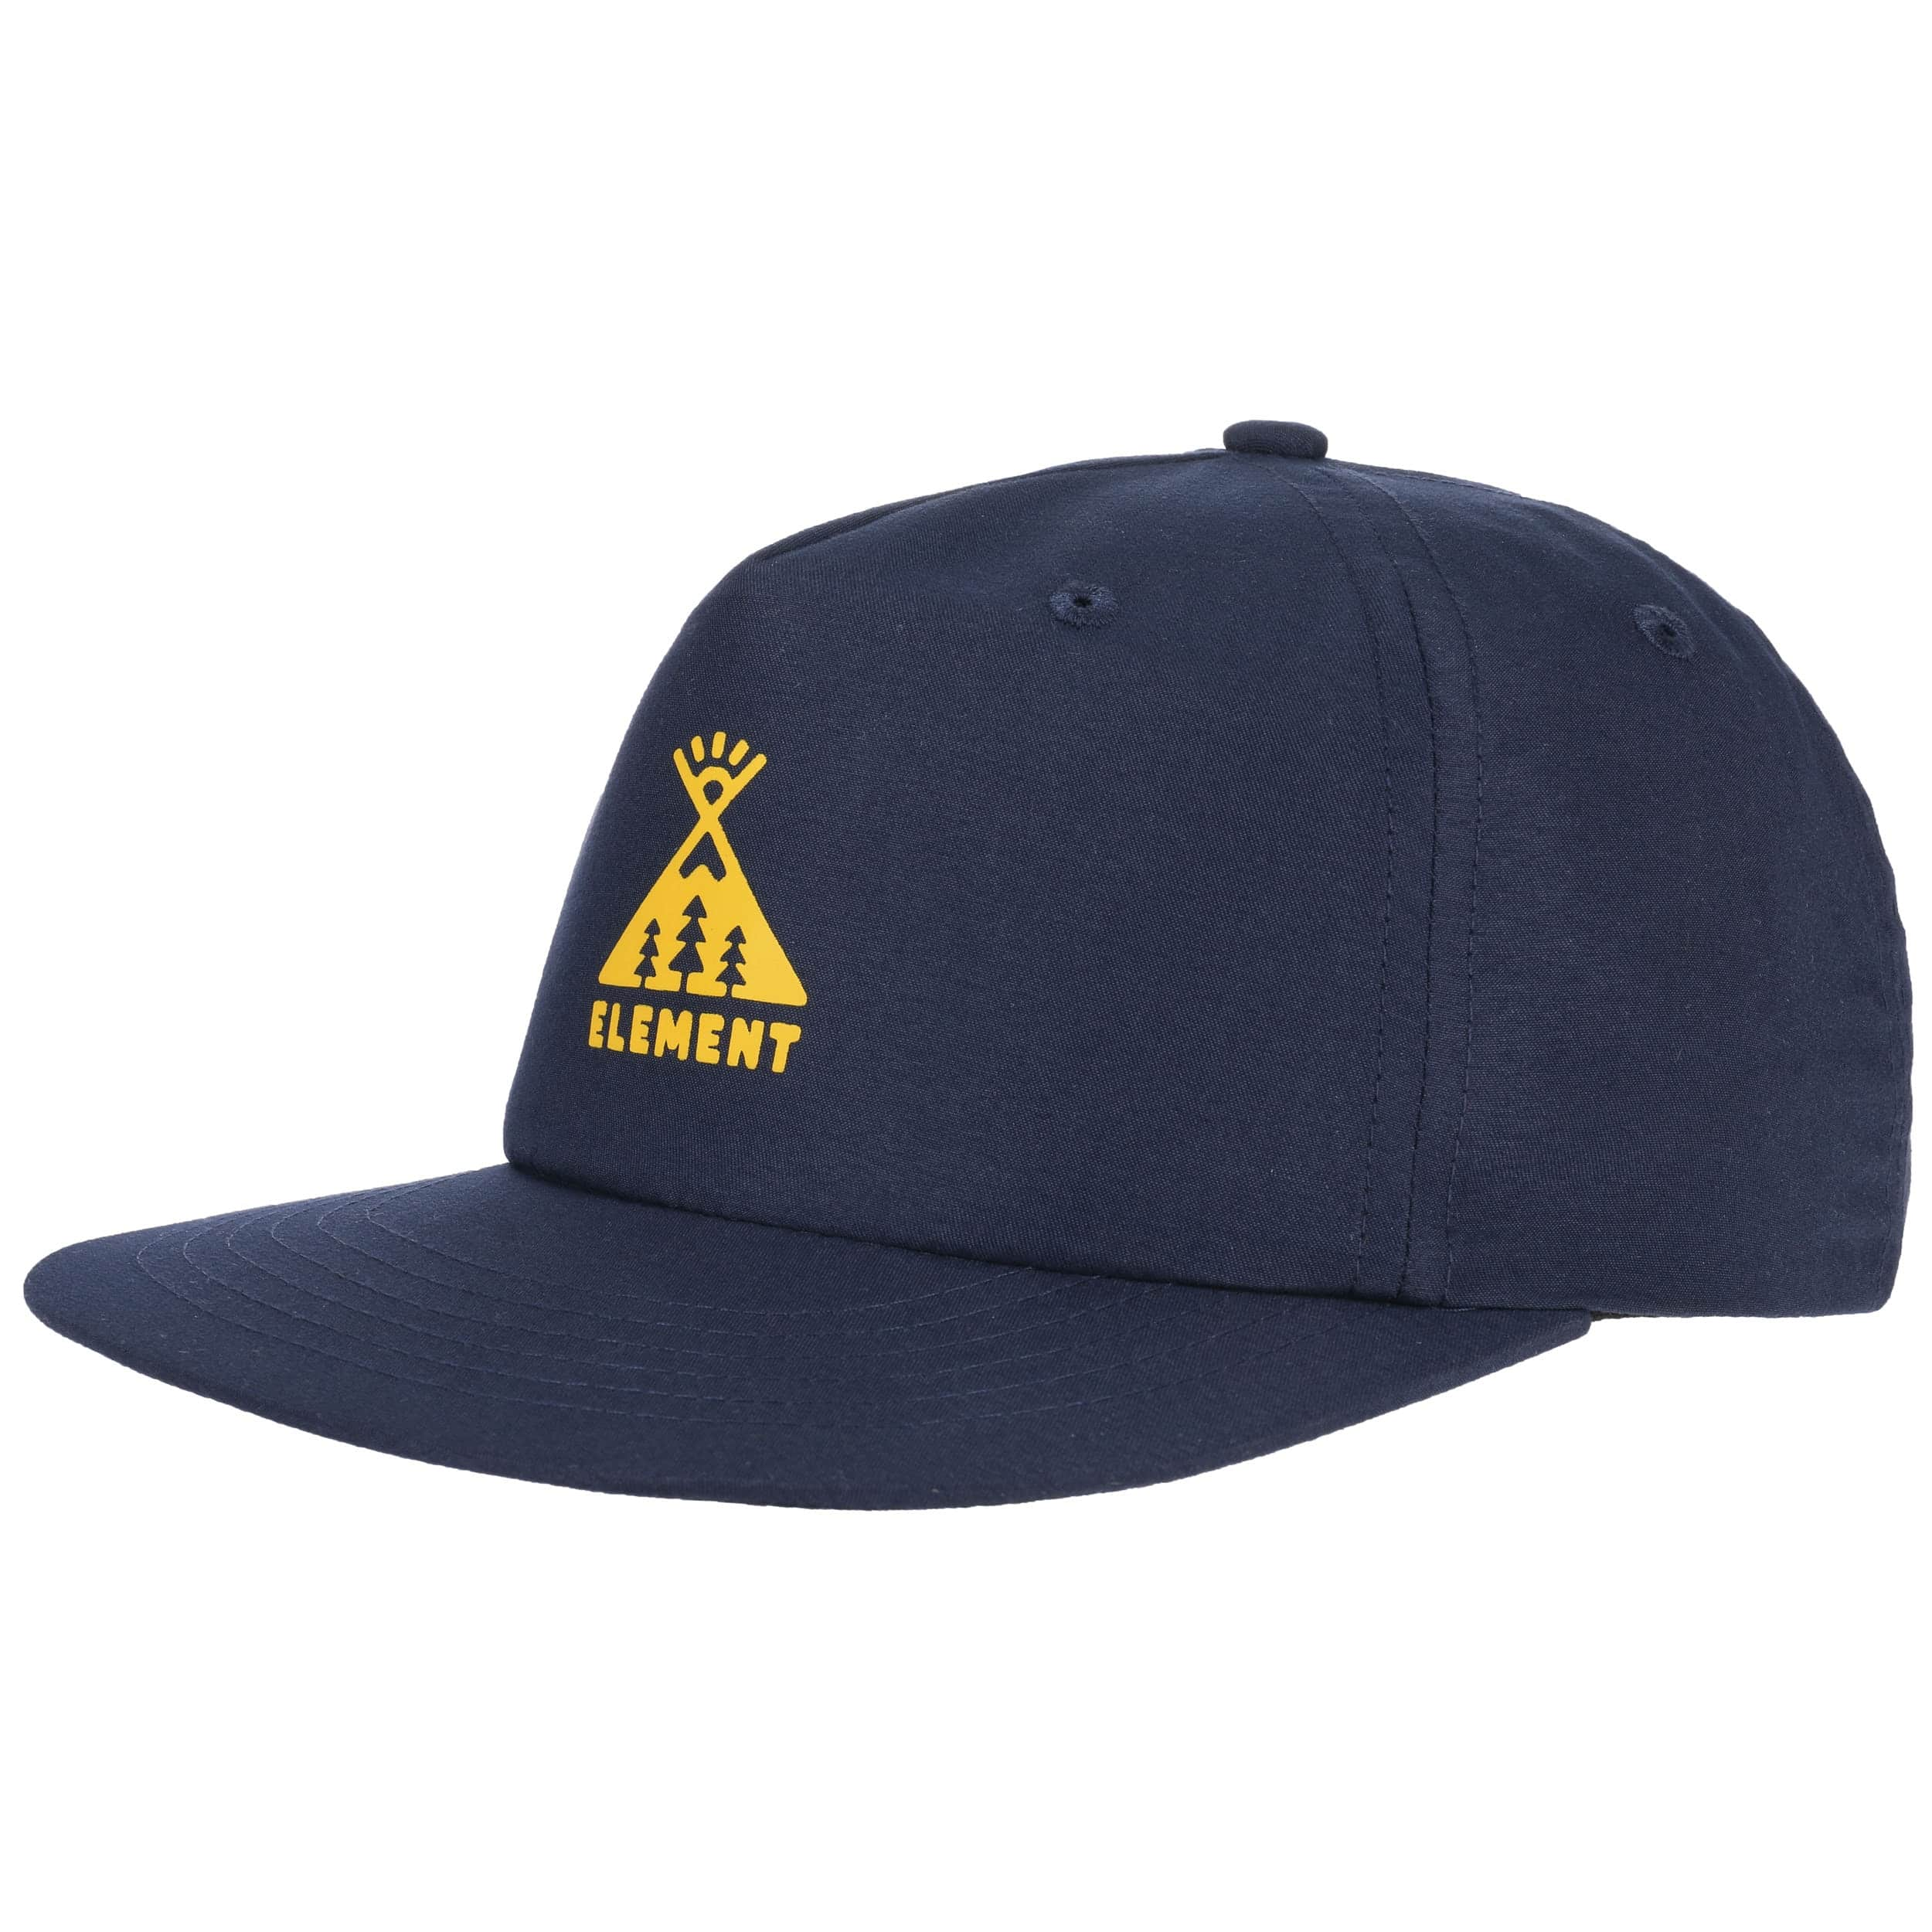 Form Strapback Cap by element - 29,95 €